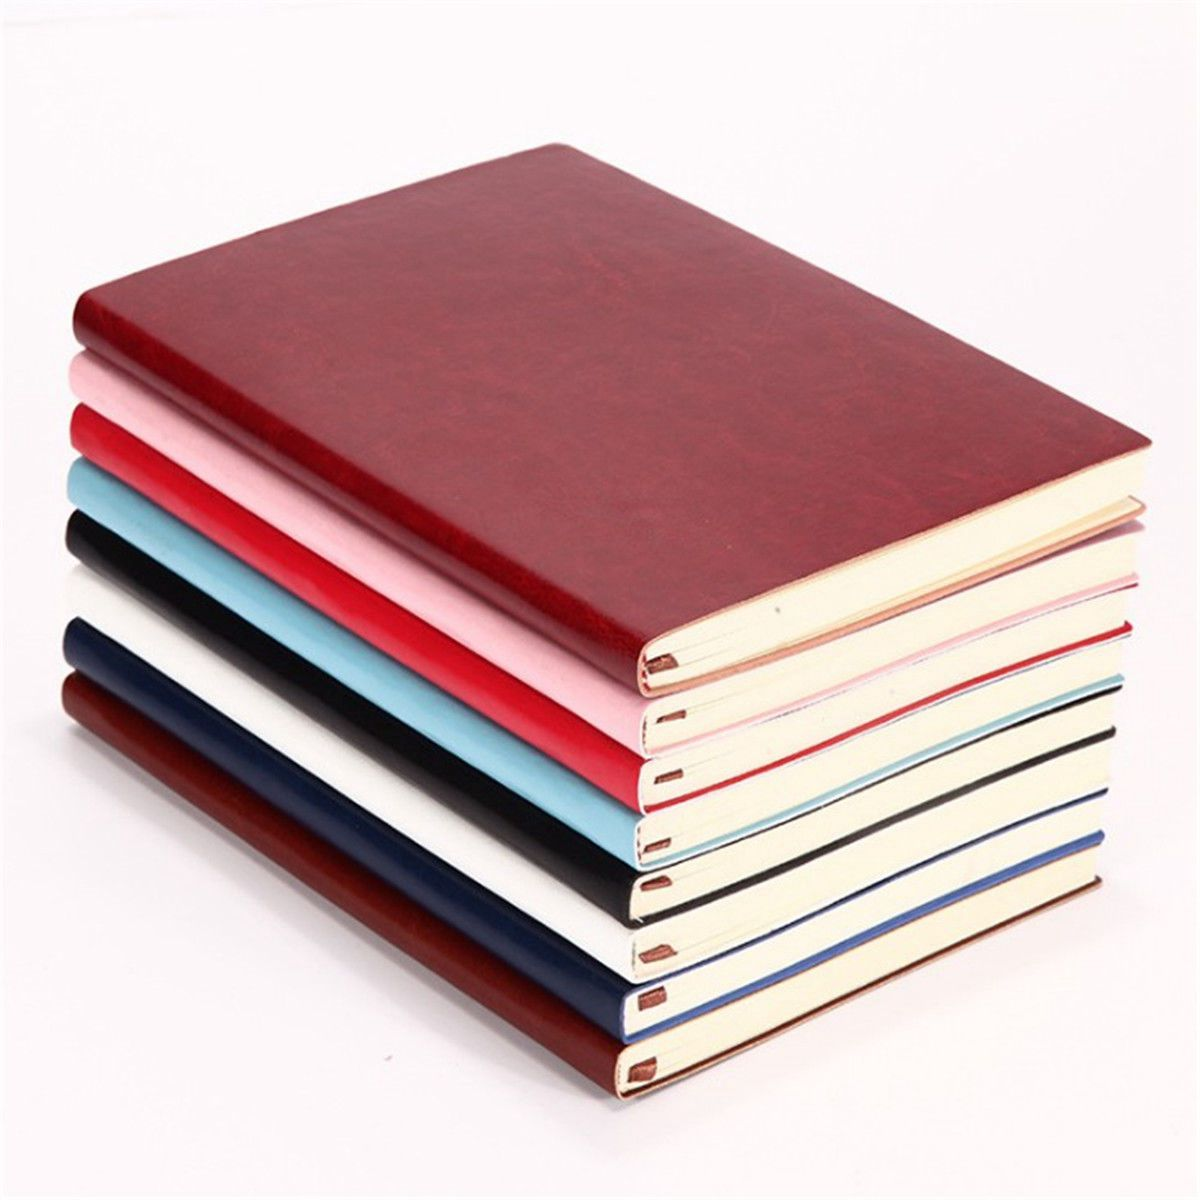 6 Color Random Soft Cover PU Leather Notebook Writing Journal 100 Page Lined Diary Book user page 6 page 10